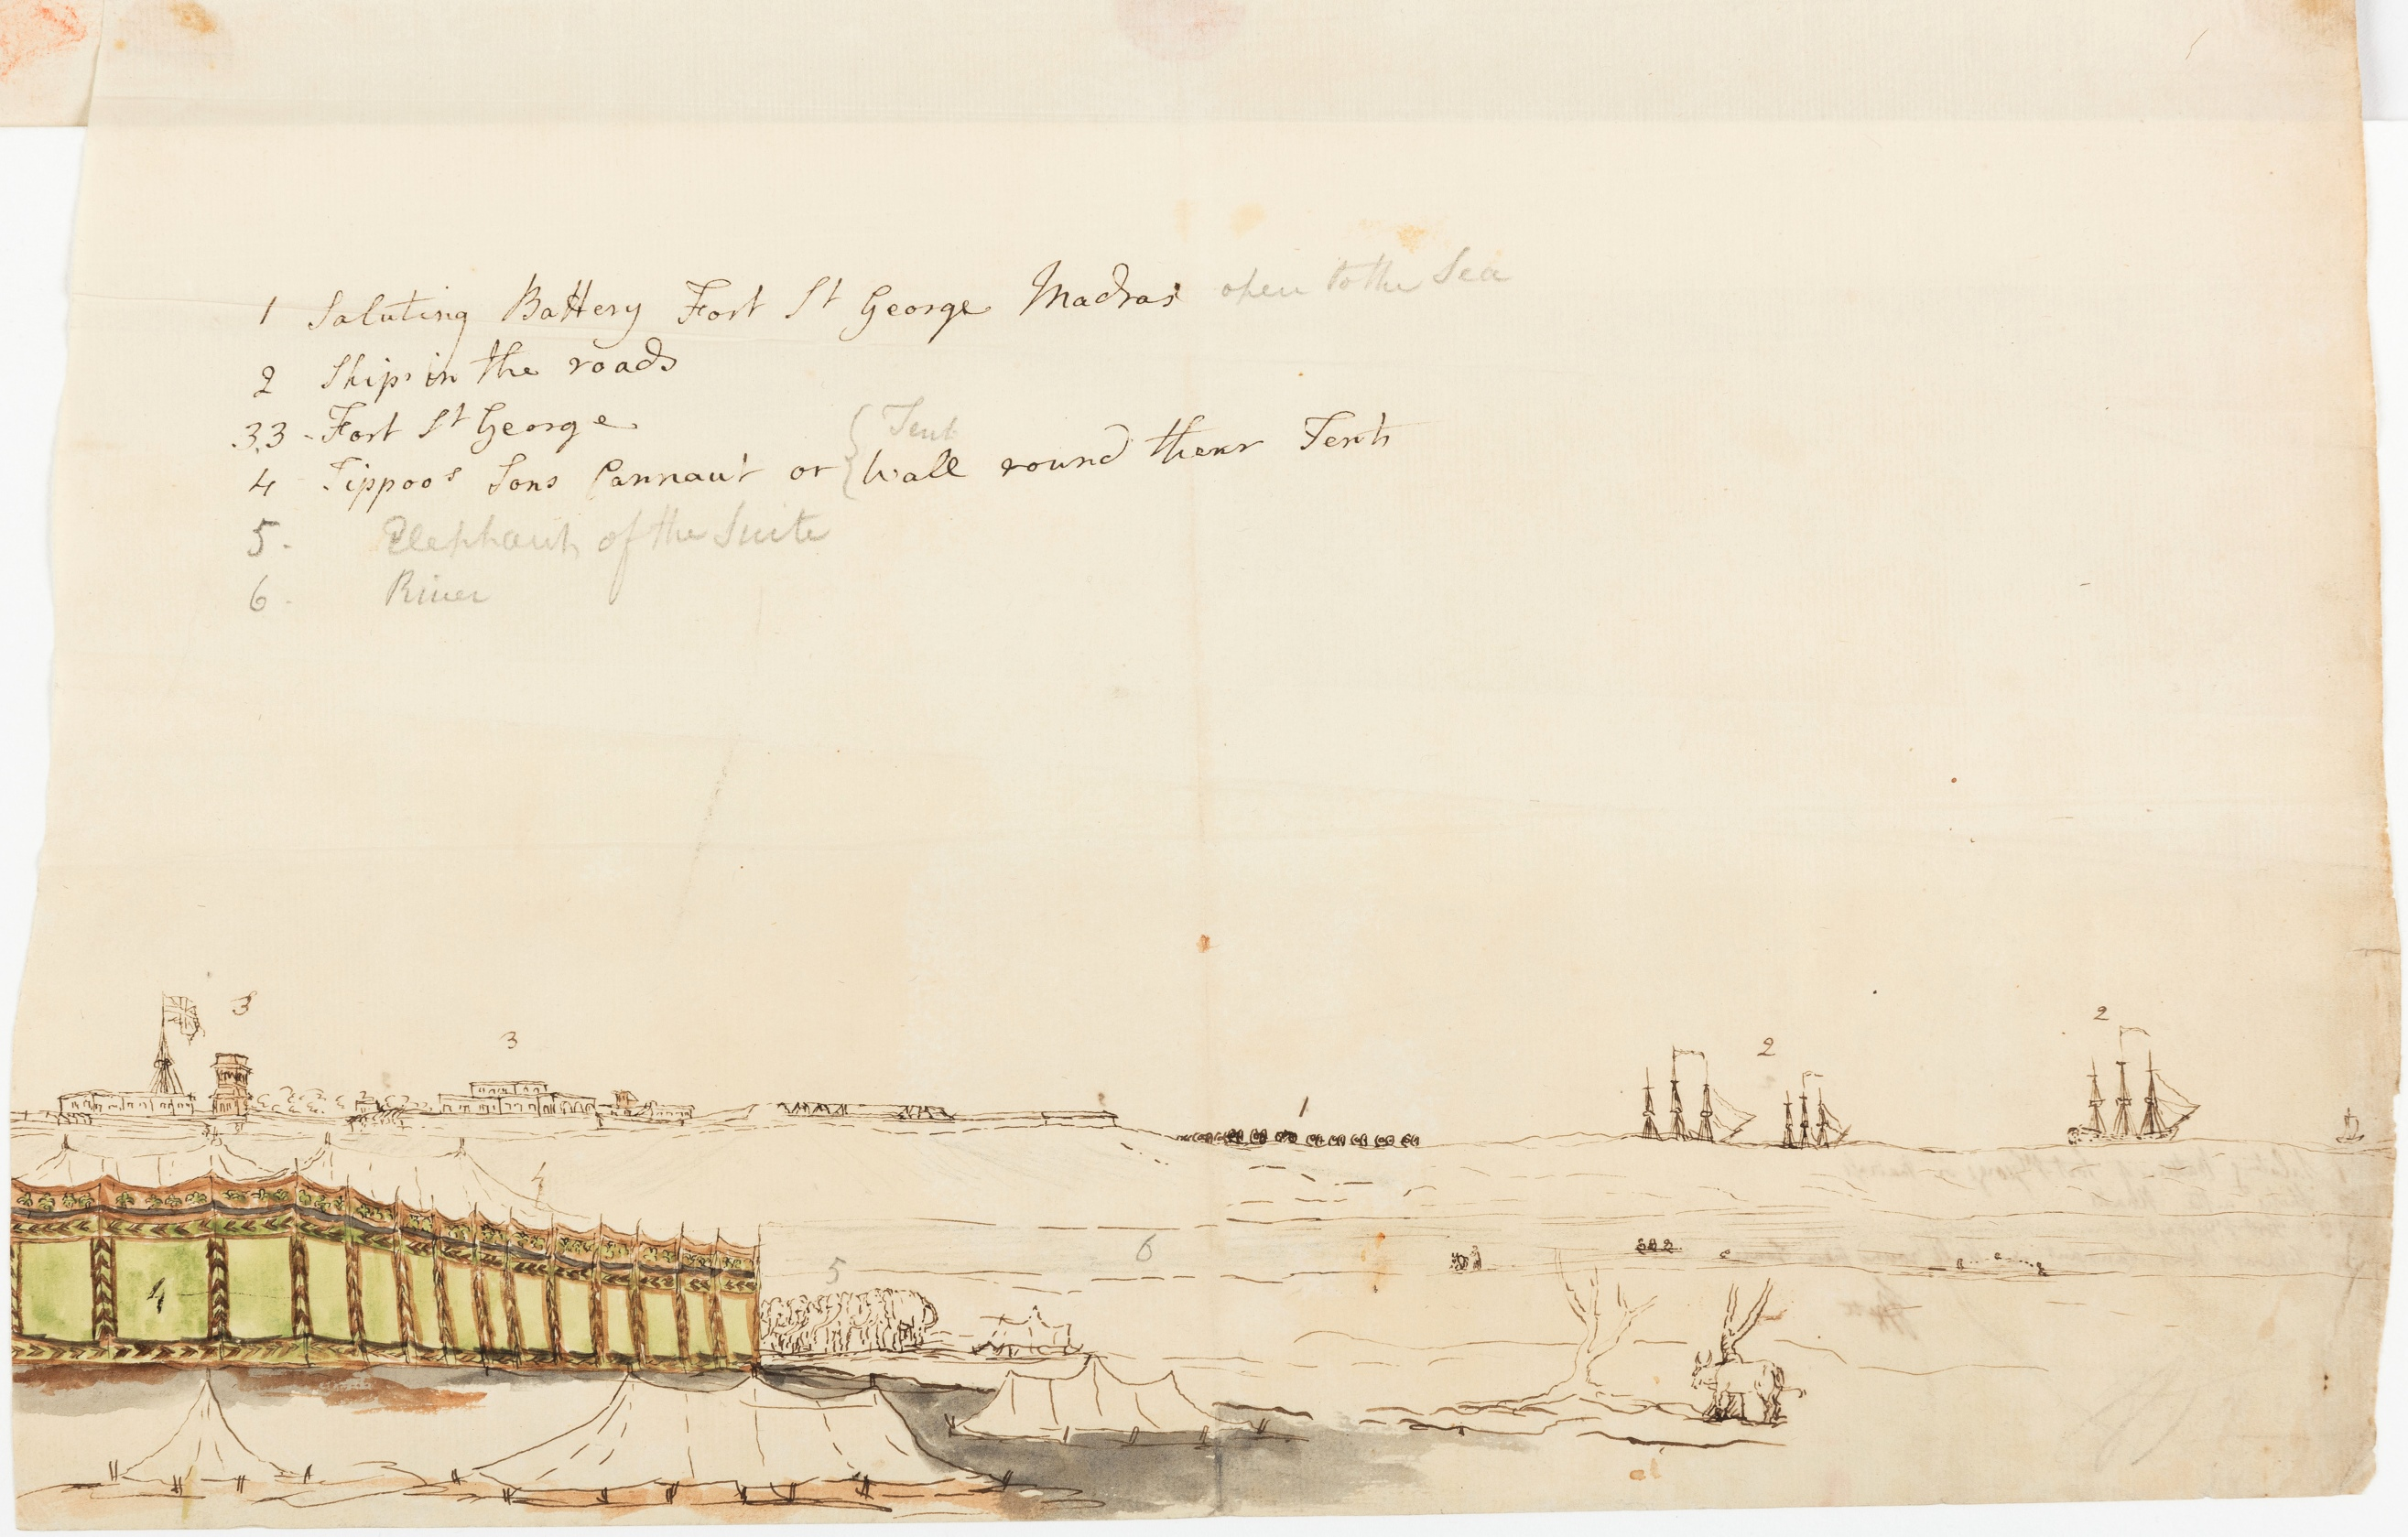 [Panoramic view] 1.Saluting Battery Fort St. George Madras open to the sea; 2. Ships in the Roads; 3. Fort St. George; 4. Tippoo's Sons Cannaut or Tent Wall round their Tents; 5. Elephants of the Suite; 6. River